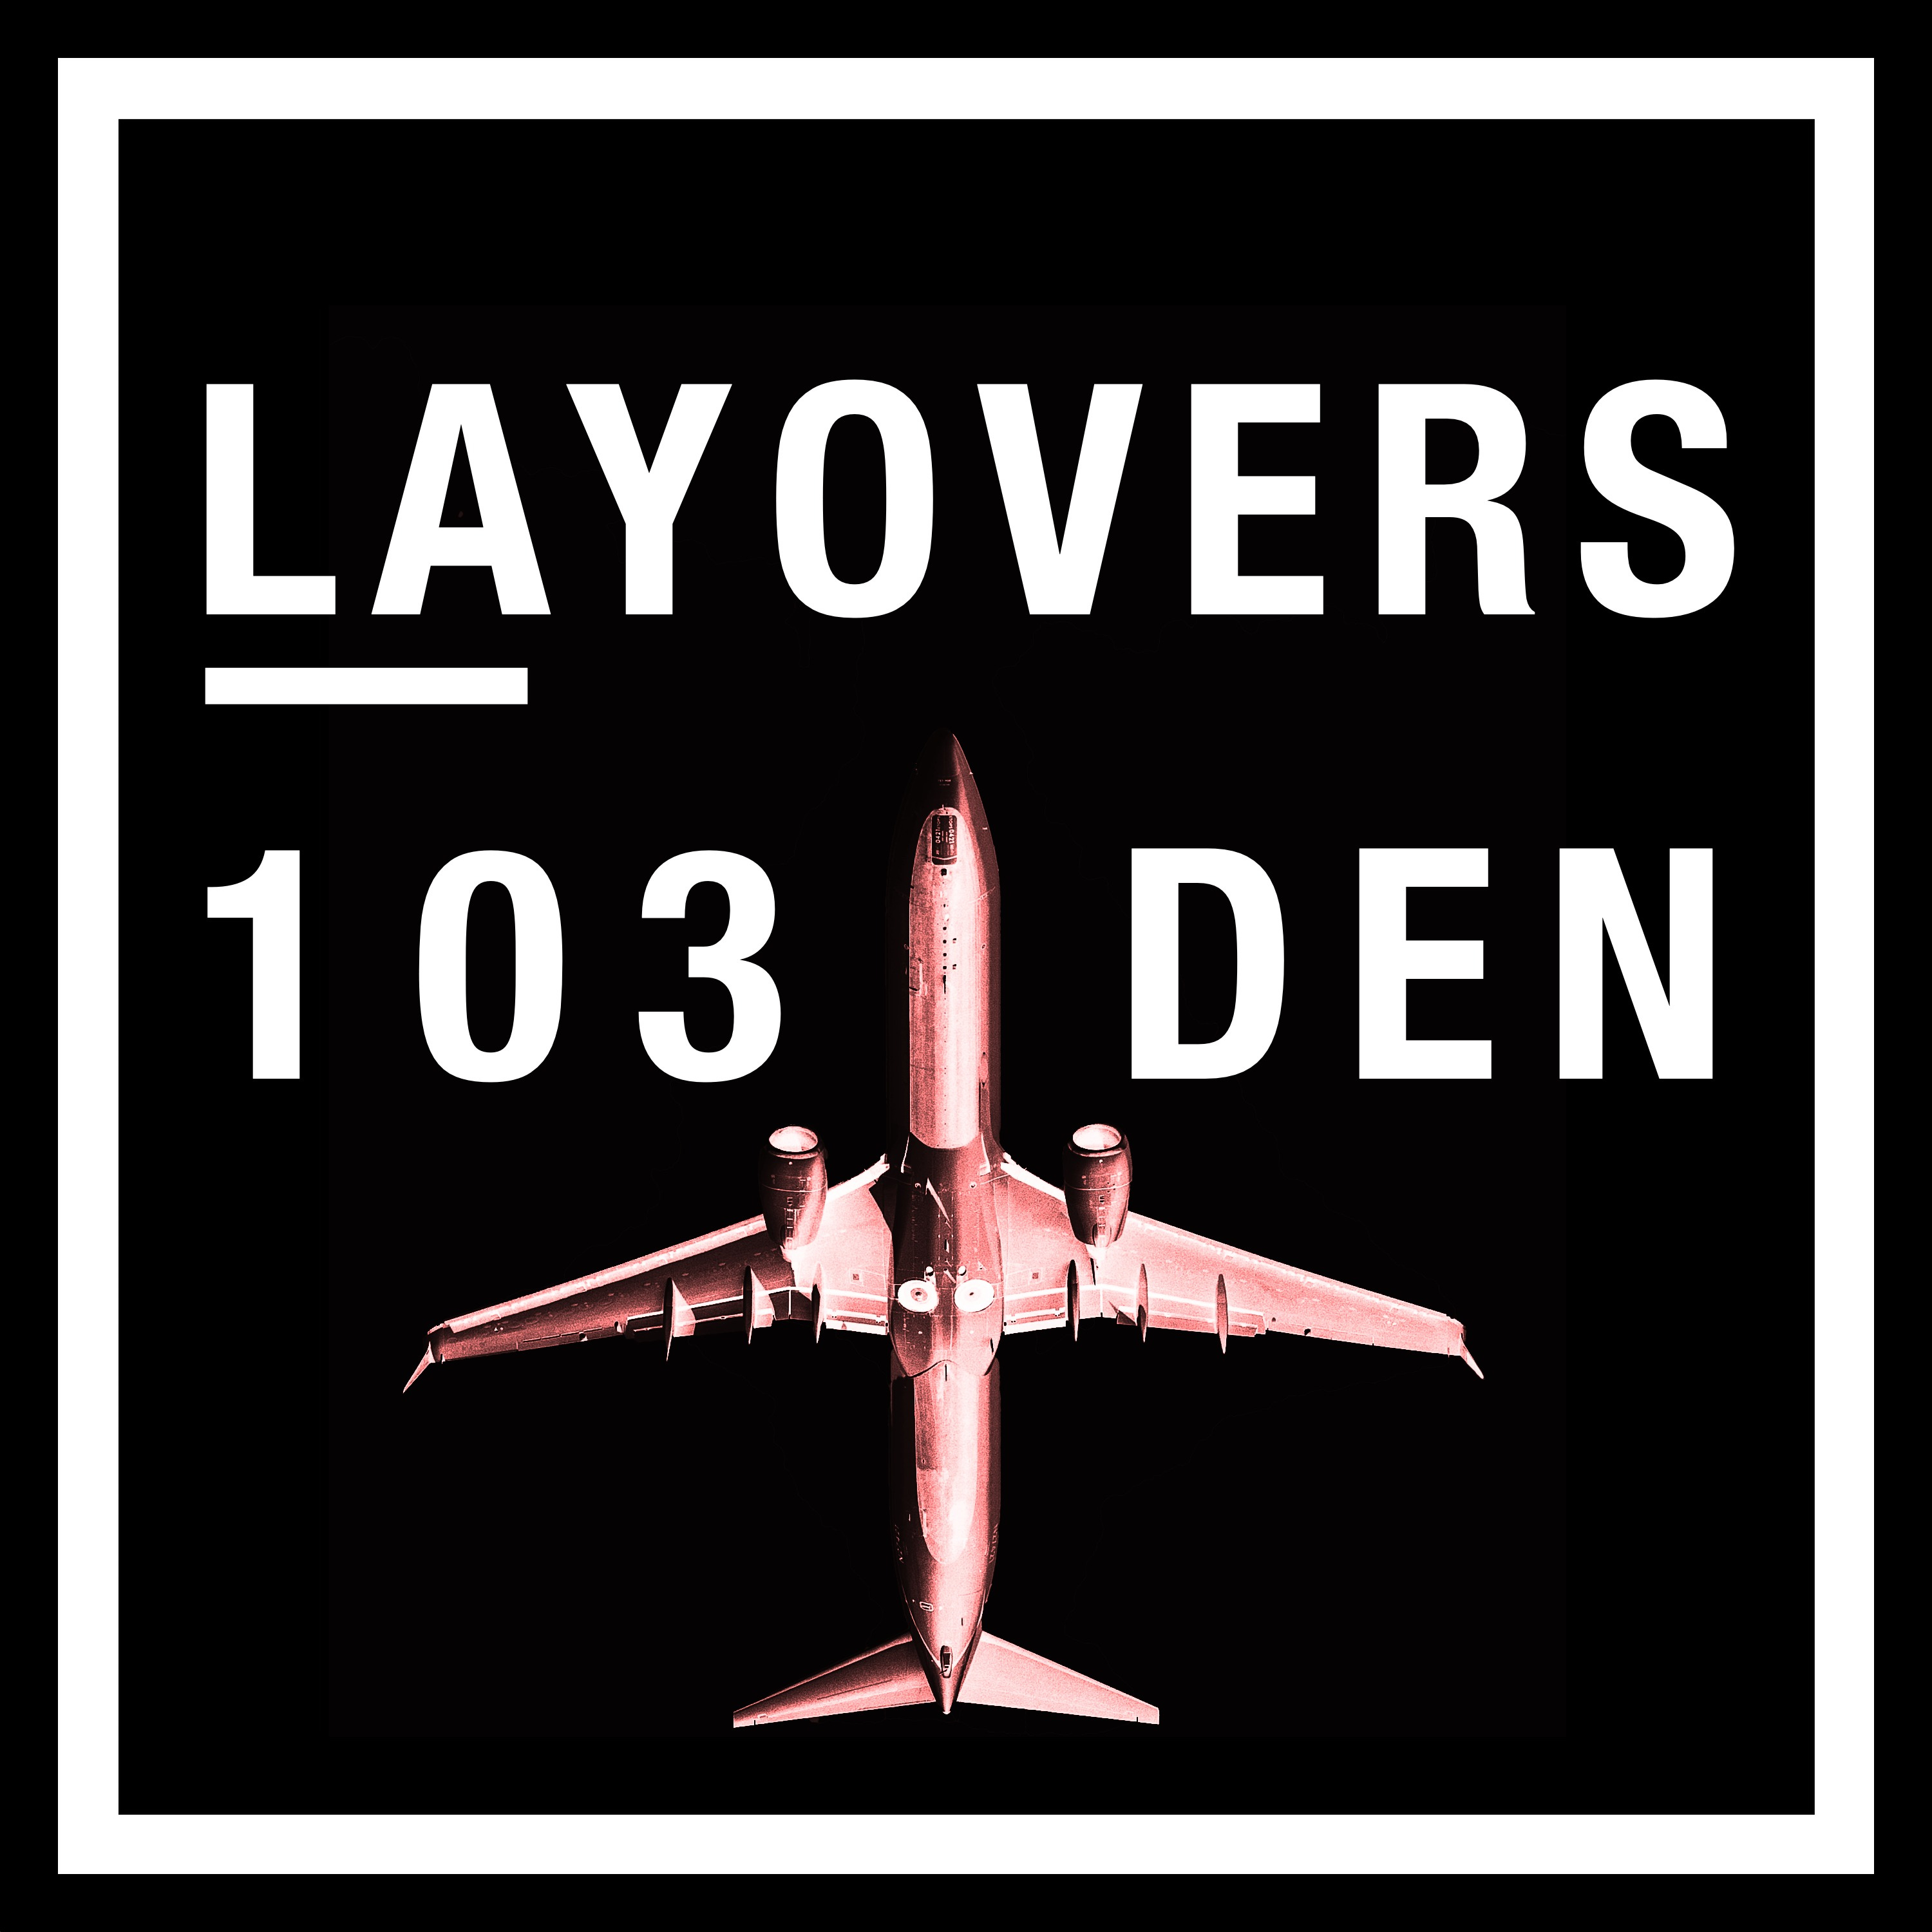 103 DEN - Fish, Chicken, Beef, Lasagna, the flavors of the airlines …and the lizards conspiracy